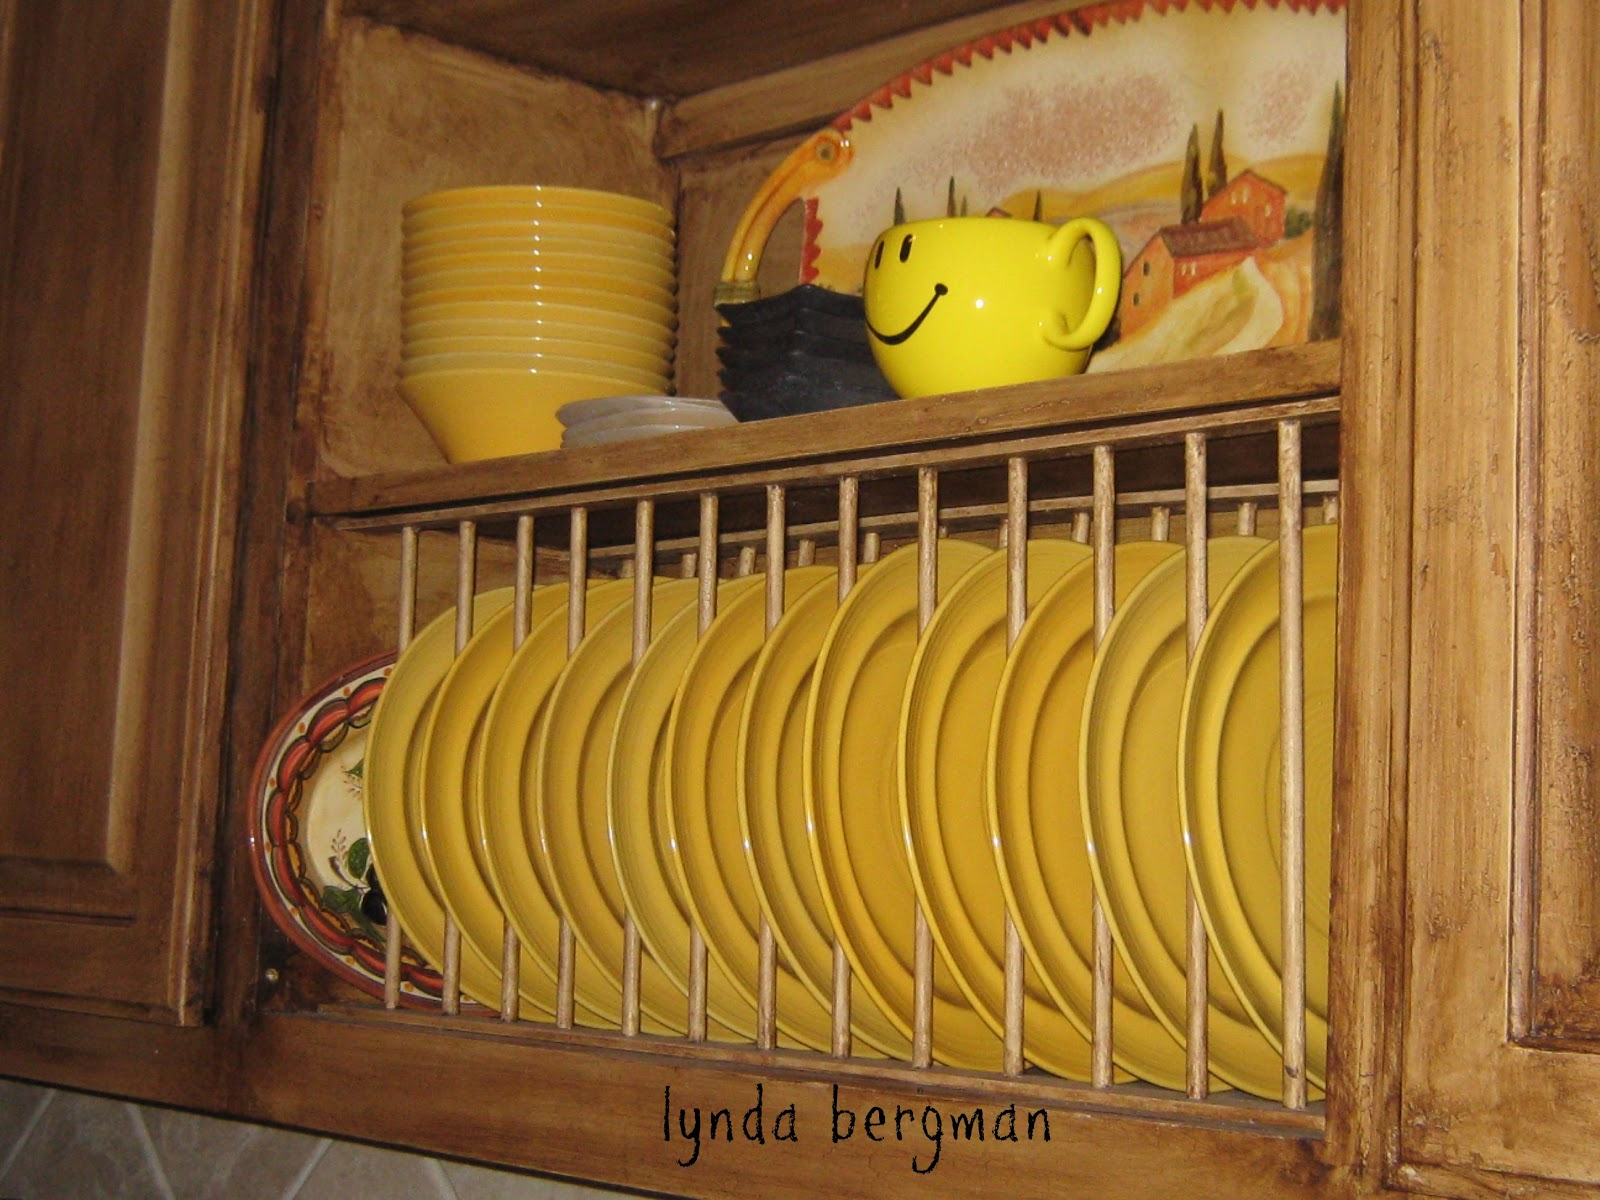 How To Build Install A Plate Rack For Cabinet Tutorial